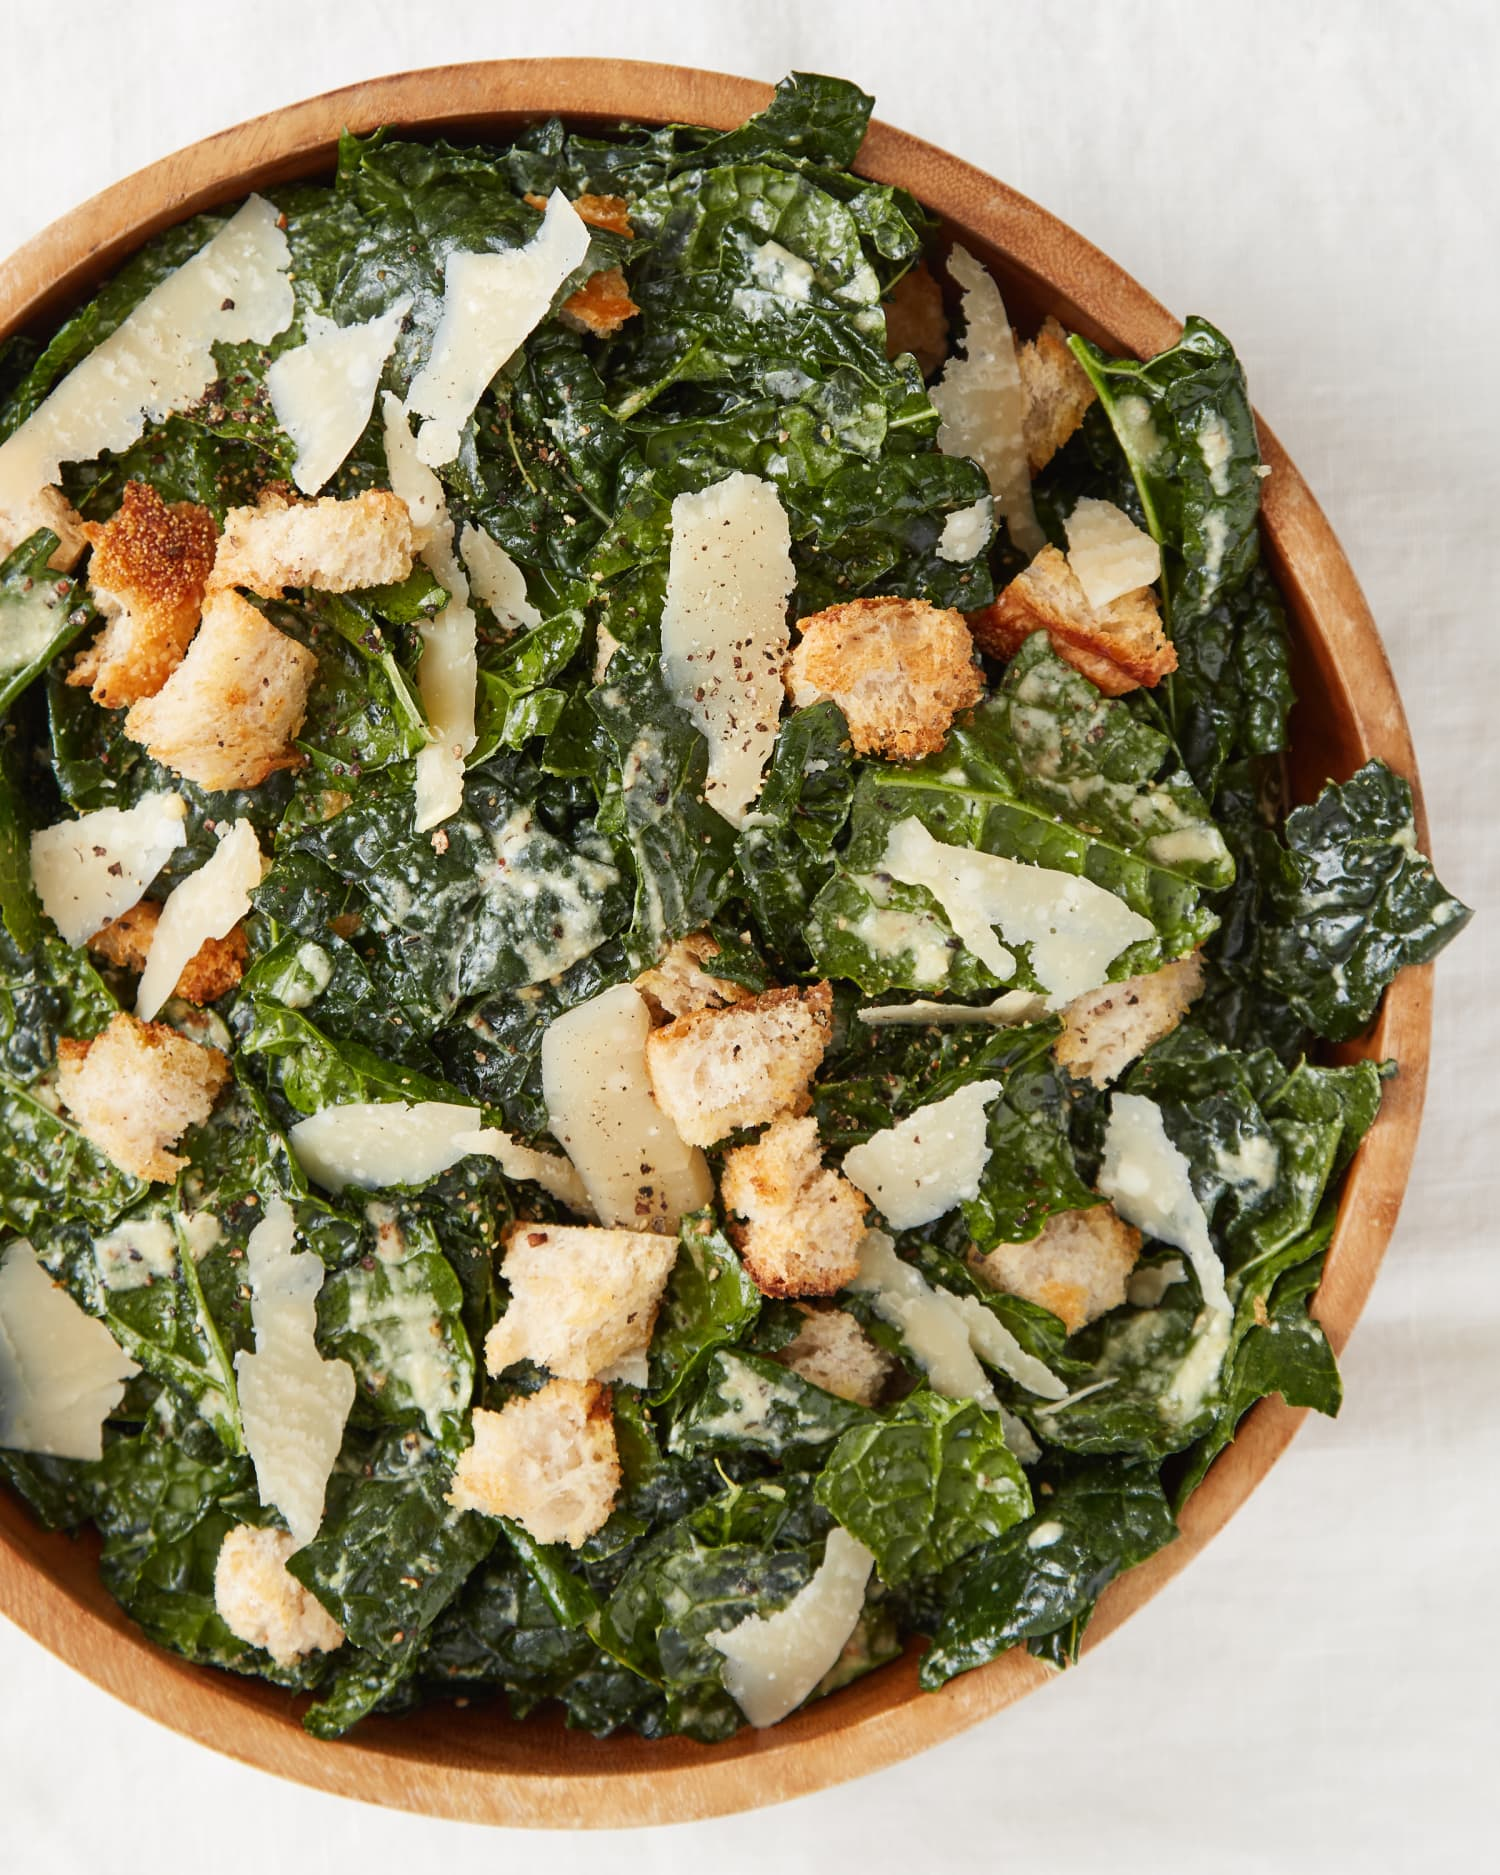 10 Sturdy Salads That Will Actually Last in the Fridge